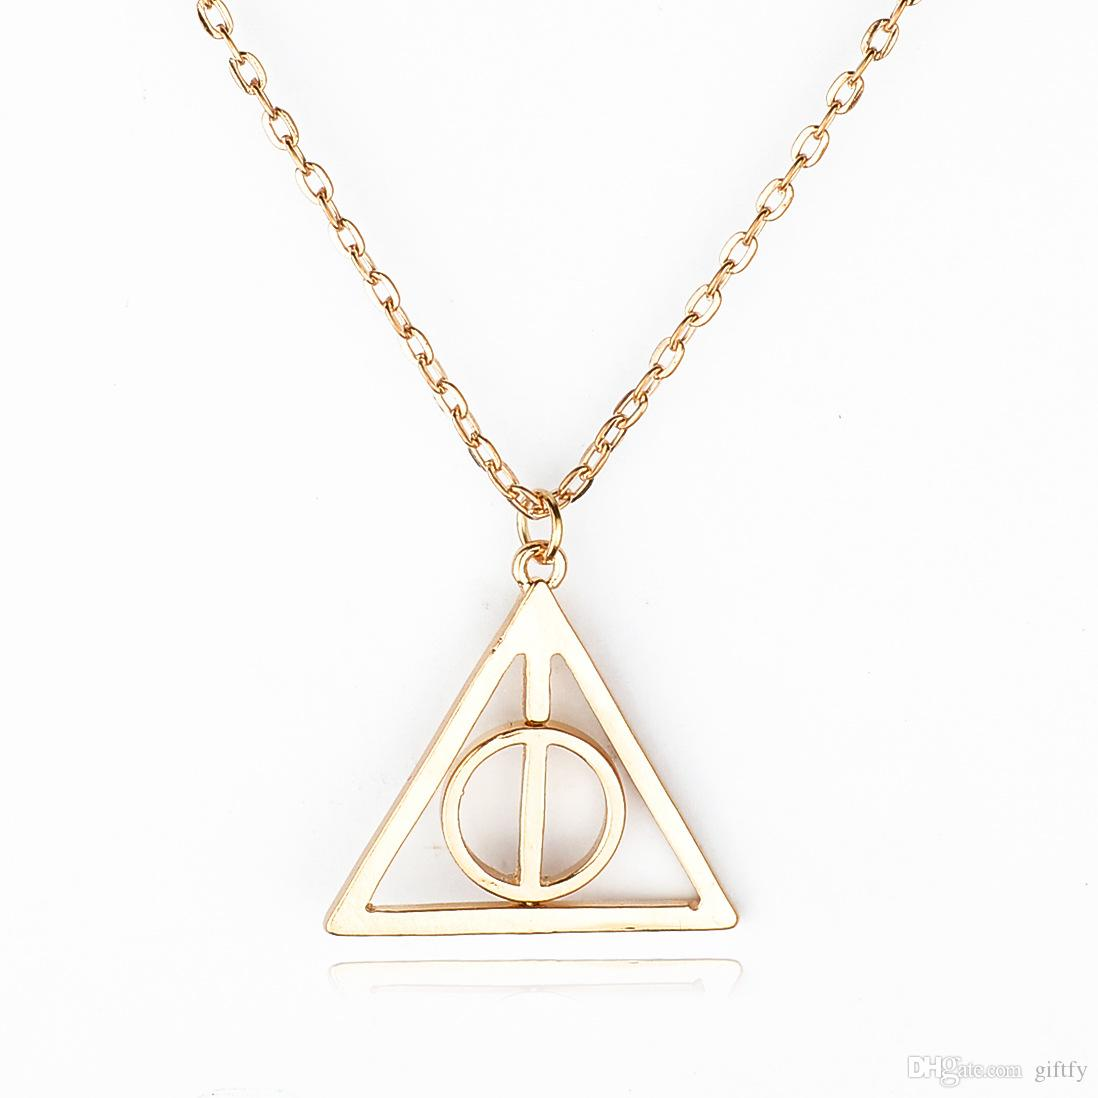 Wholesale Harry Potter and the Deathly Hallows Rotatable Pendant Necklace